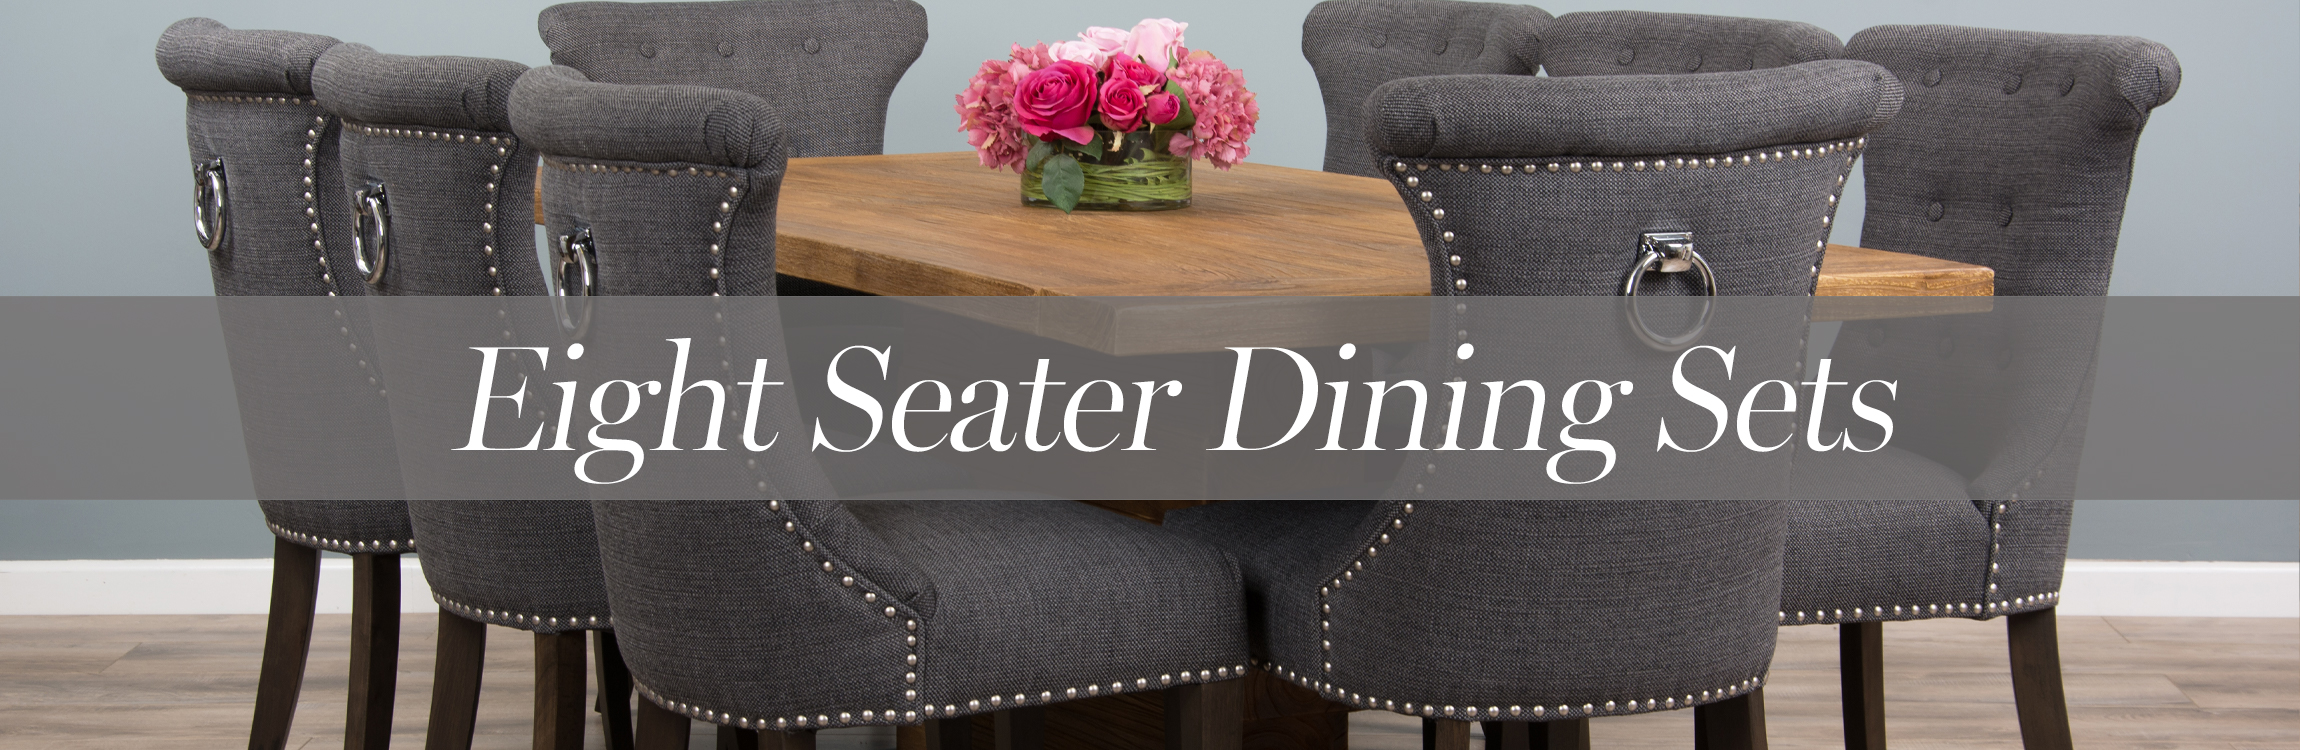 Eight Seat Dining Table and Chairs   Sustainable Furniture